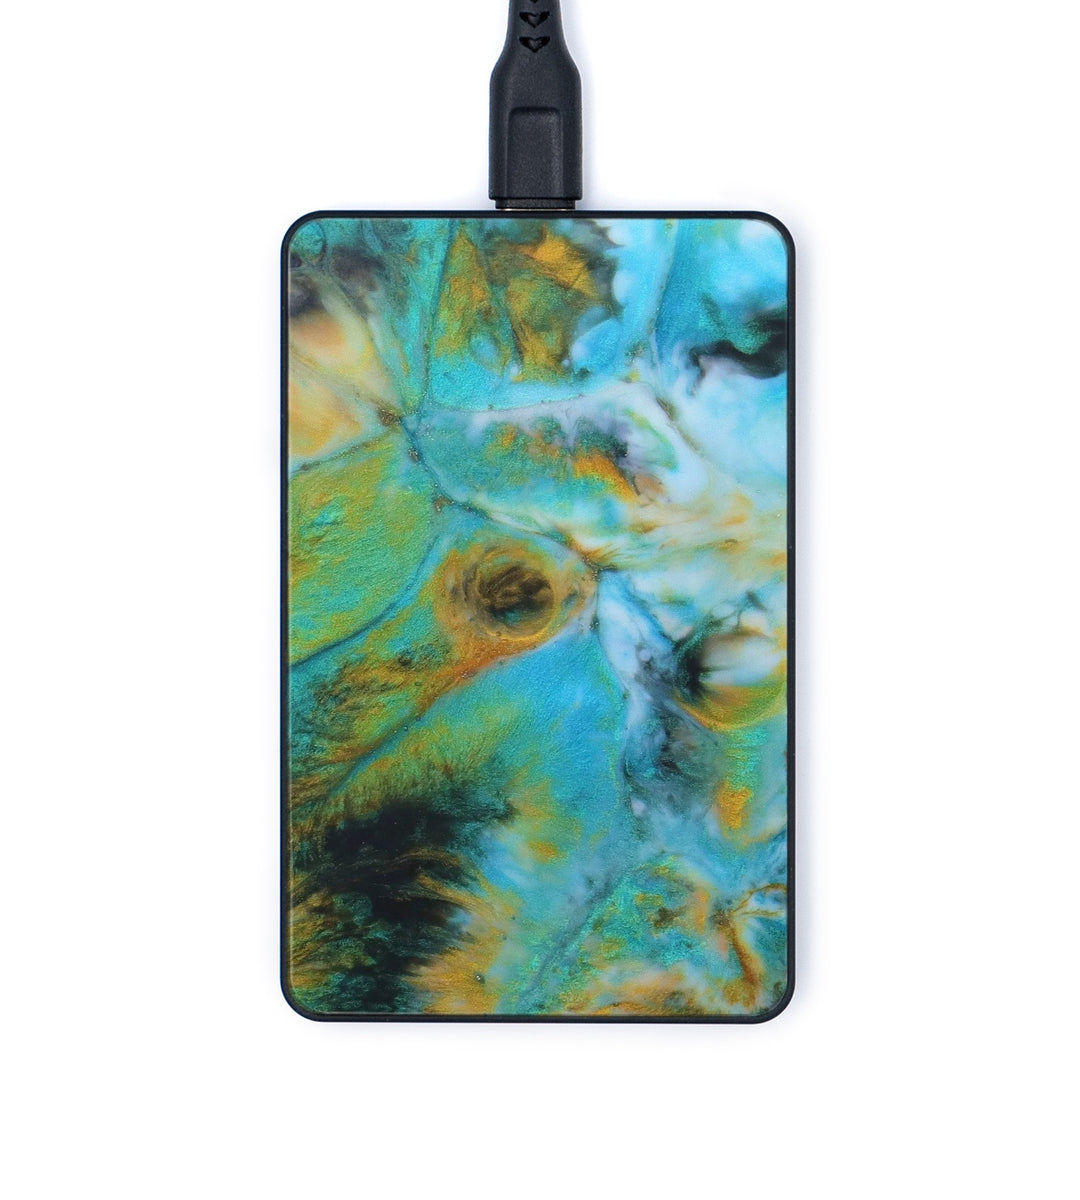 Thin ResinArt Wireless Charger - Janey (Teal & Gold, 347560)